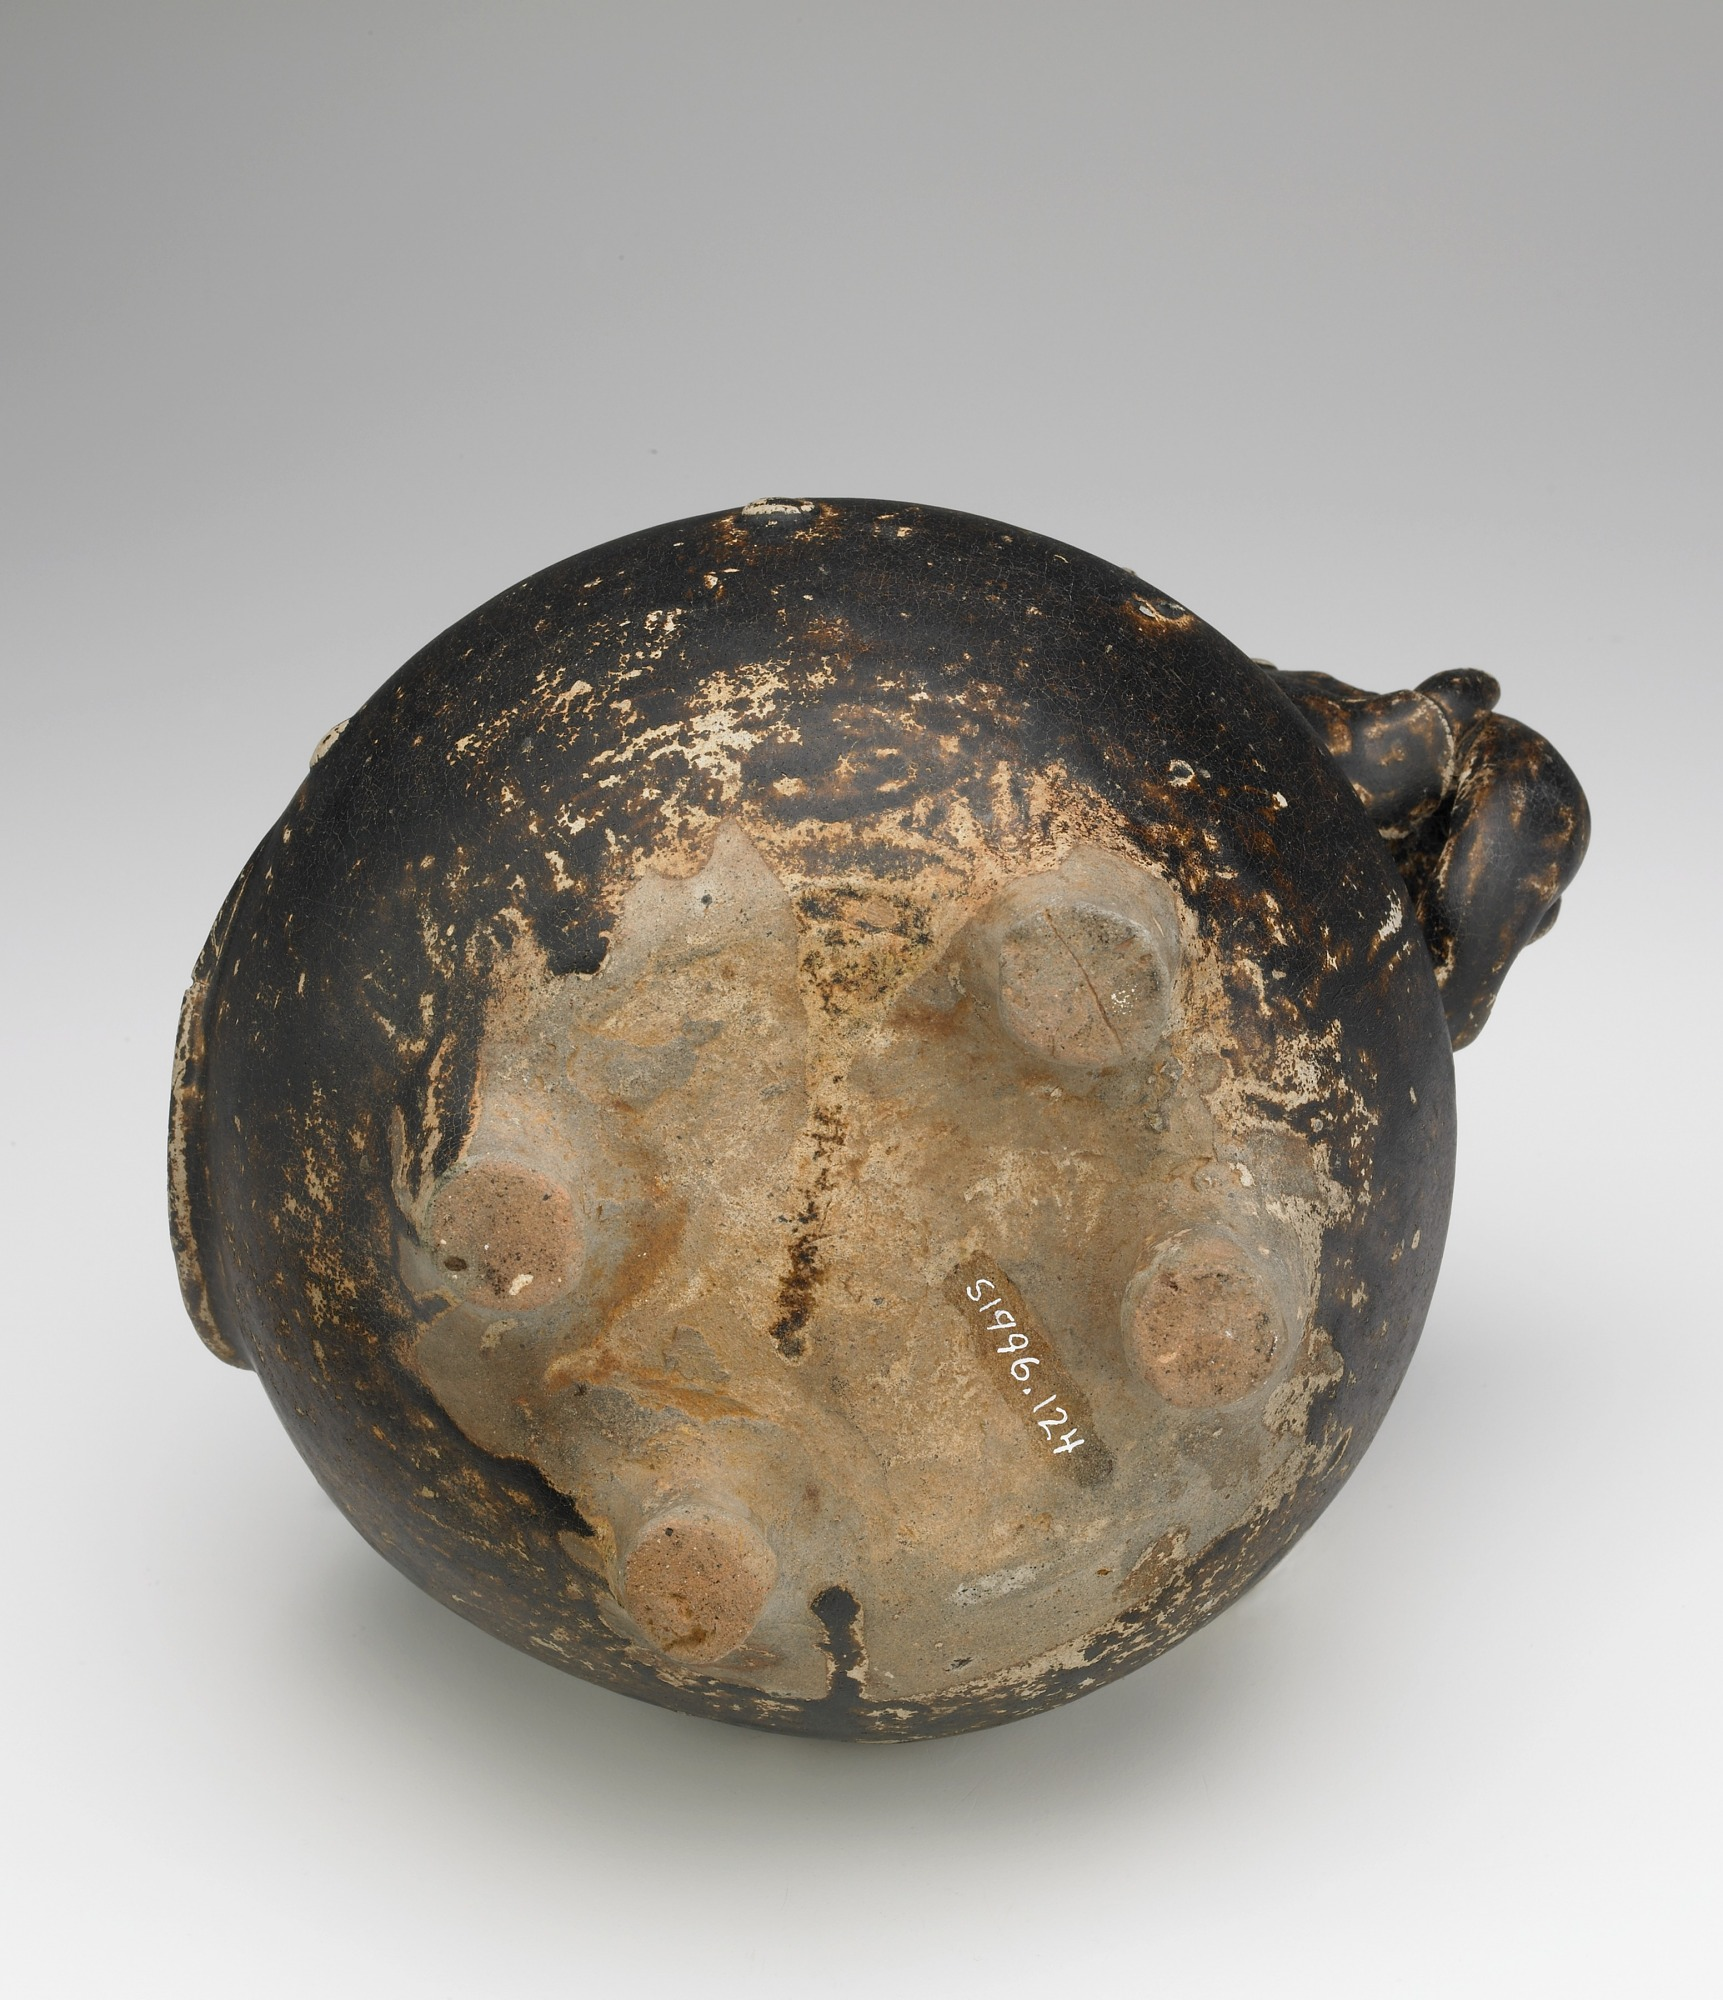 base: Pouring vessel in the form of a caparisoned elephant, with a spout on the shoulder